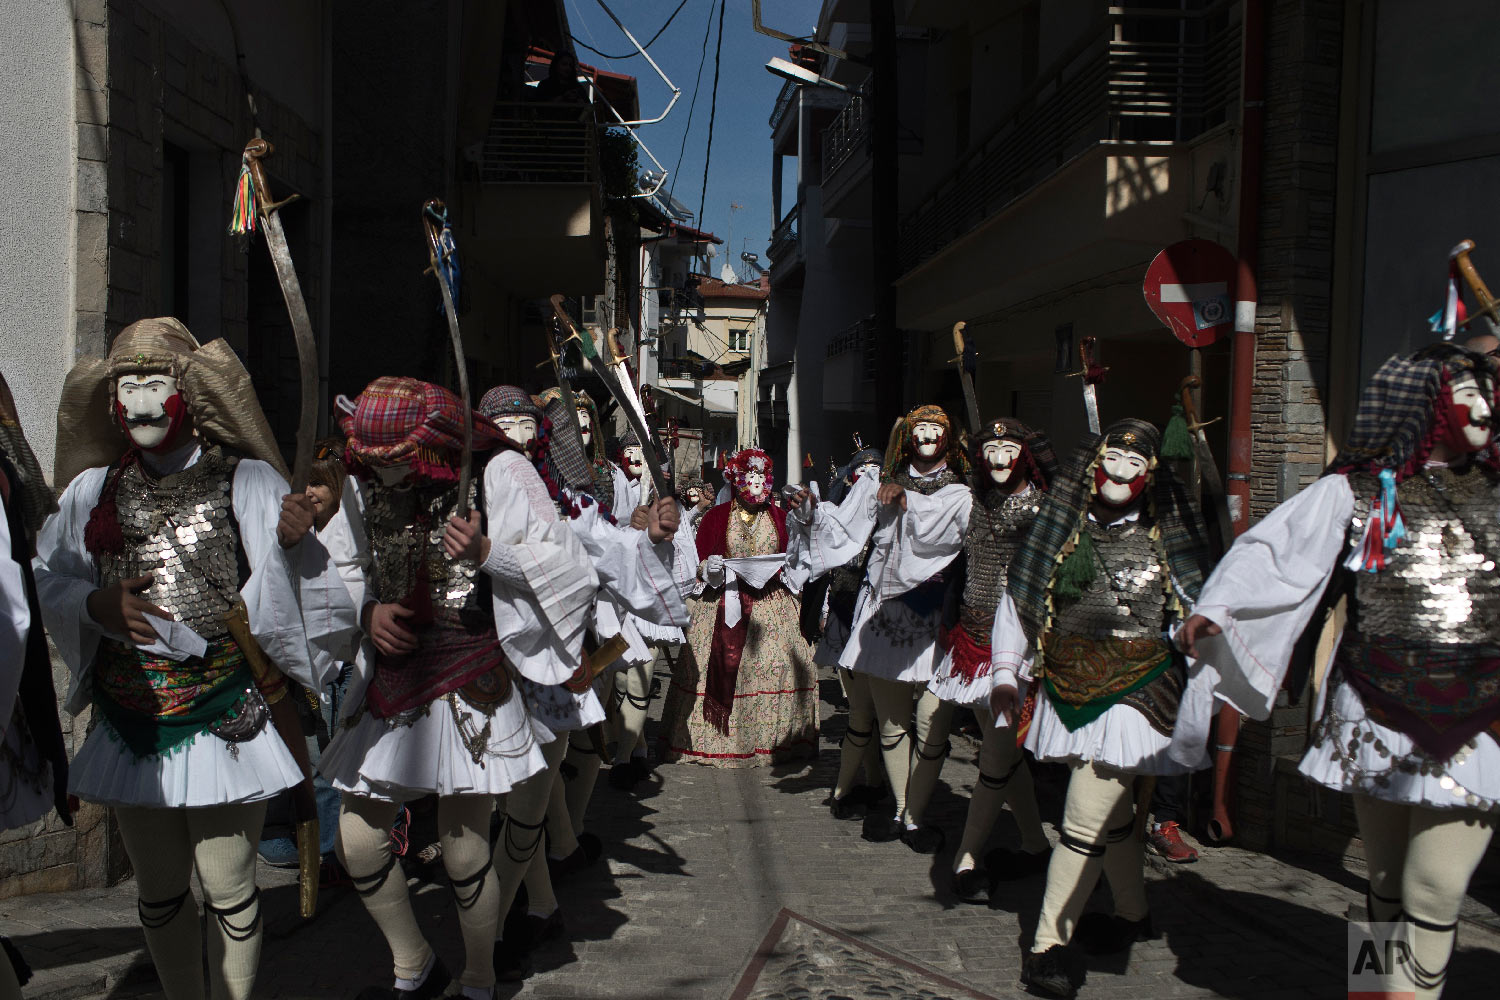 Dancers with masks and traditional costumes perform in the Boules and Genitsaroi carnival parade in the town of Naousa, northern Greece on March 10, 2019. (AP Photo/Petros Giannakouris)